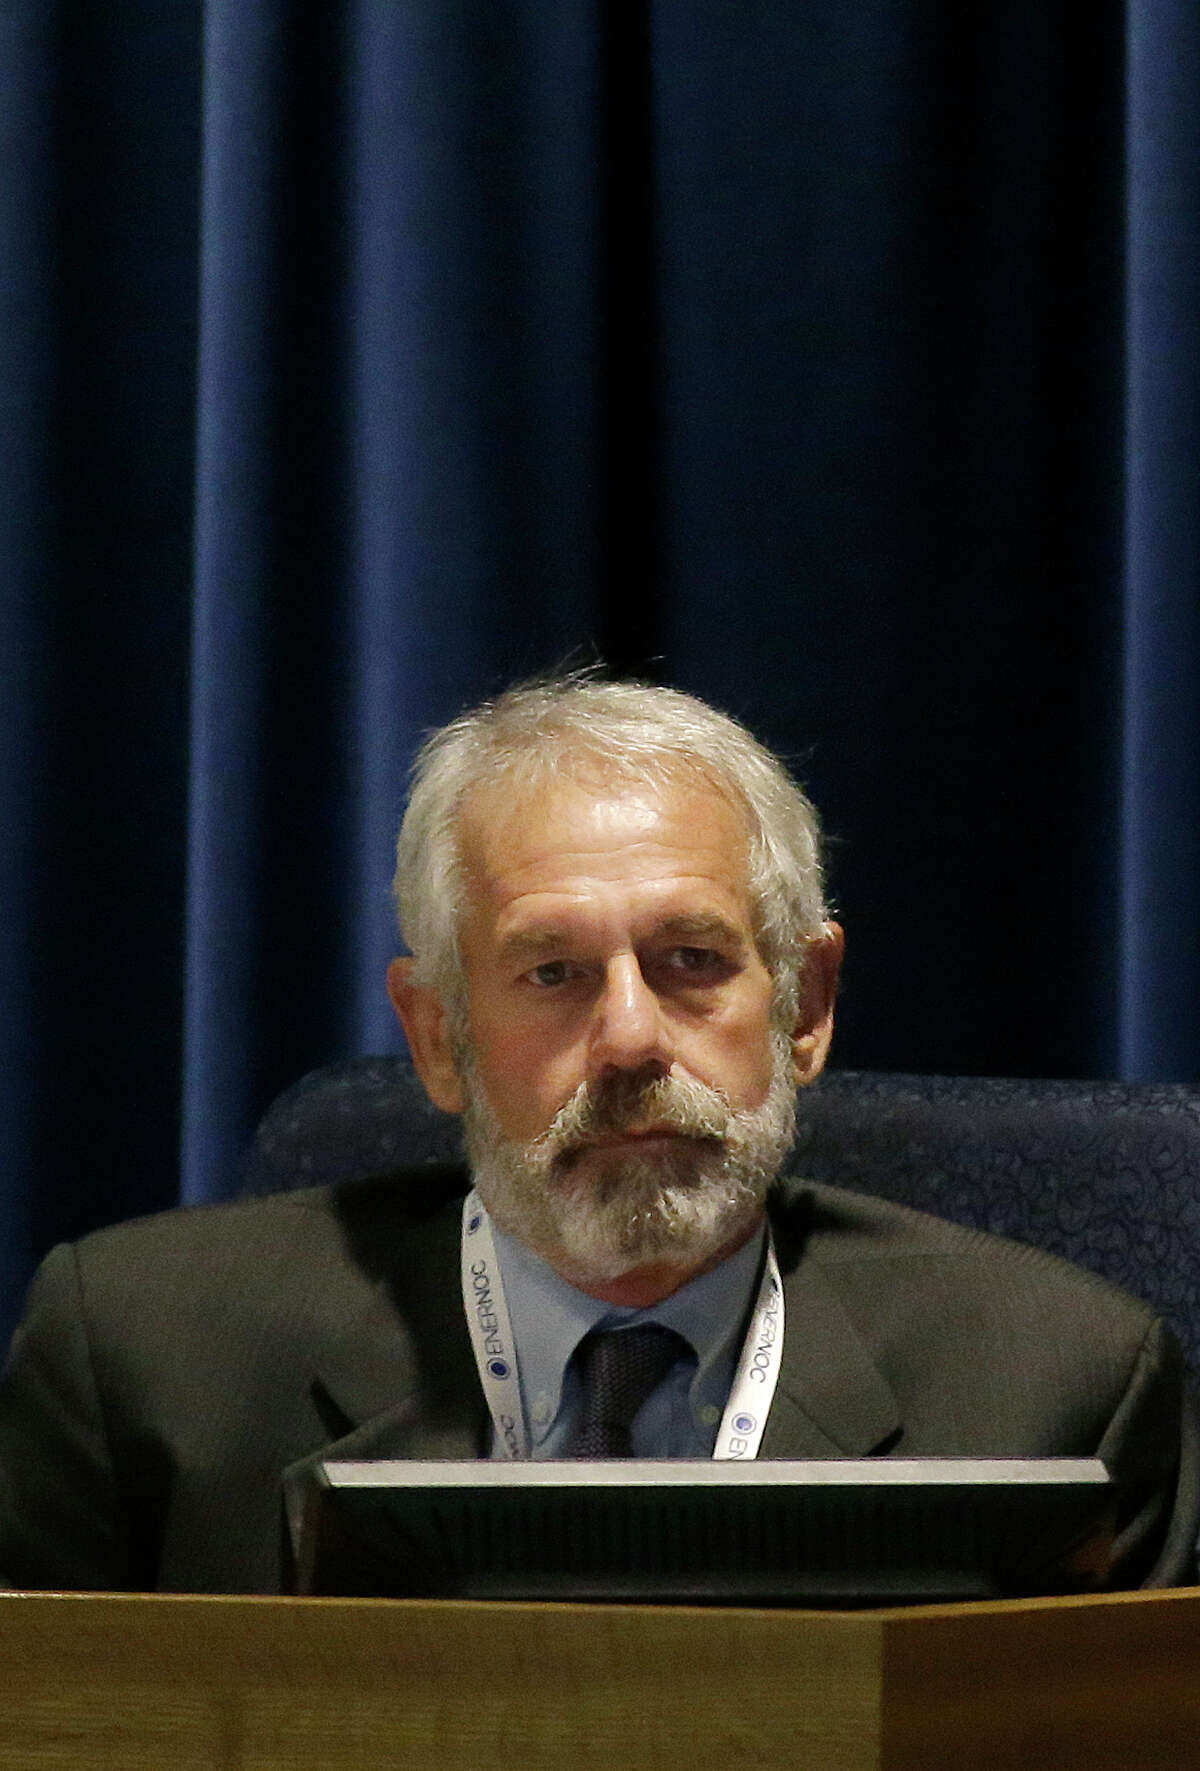 This Dec. 18, 2014 photo shows California Public Utilities Commissioner Michael Picker during a meeting of the five-member commission in San Francisco.